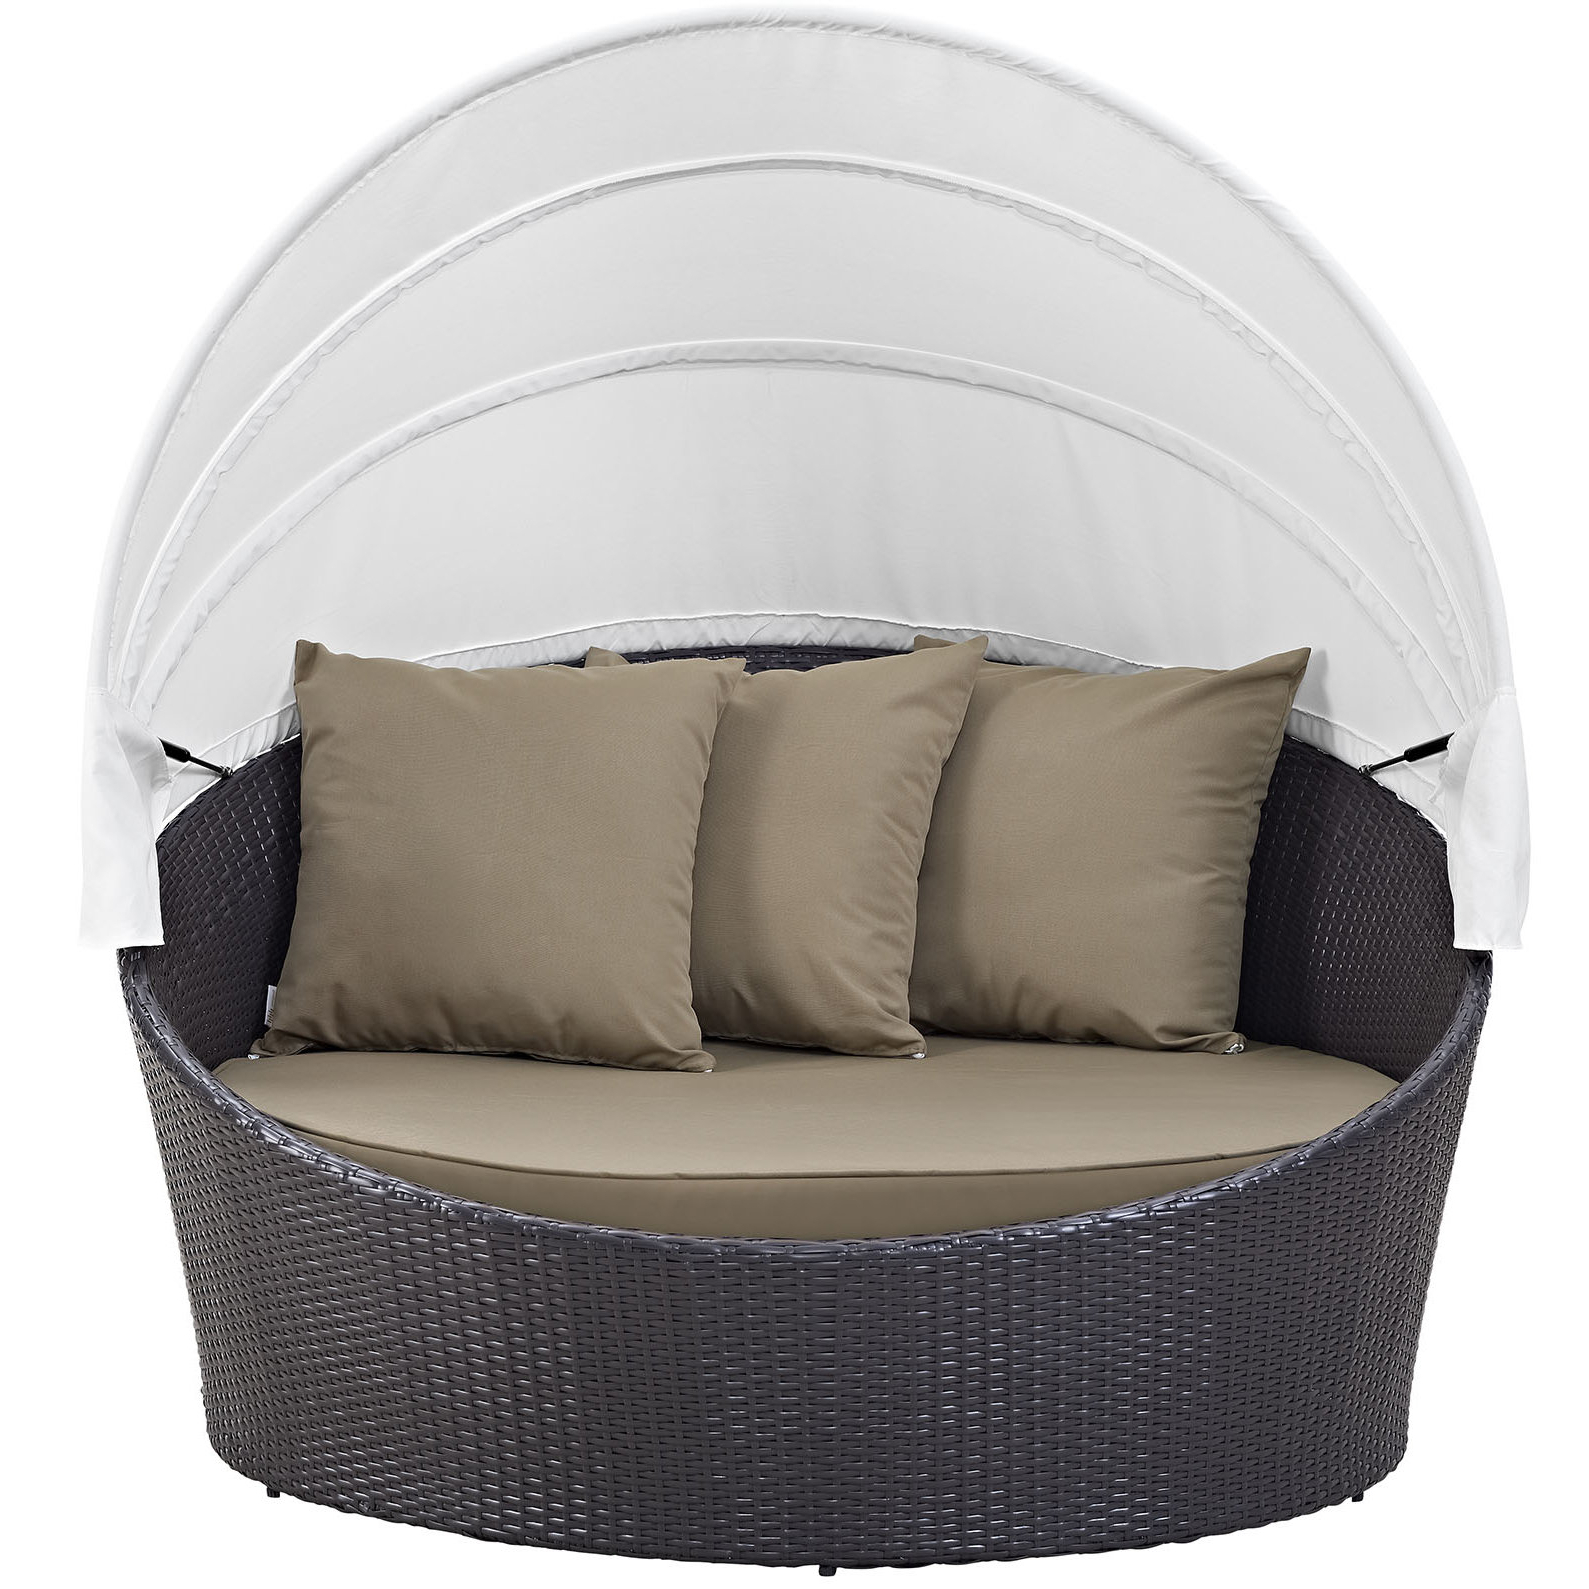 Well Known Brentwood Canopy Patio Daybed With Cushions Within Brentwood Patio Daybeds With Cushions (View 22 of 25)